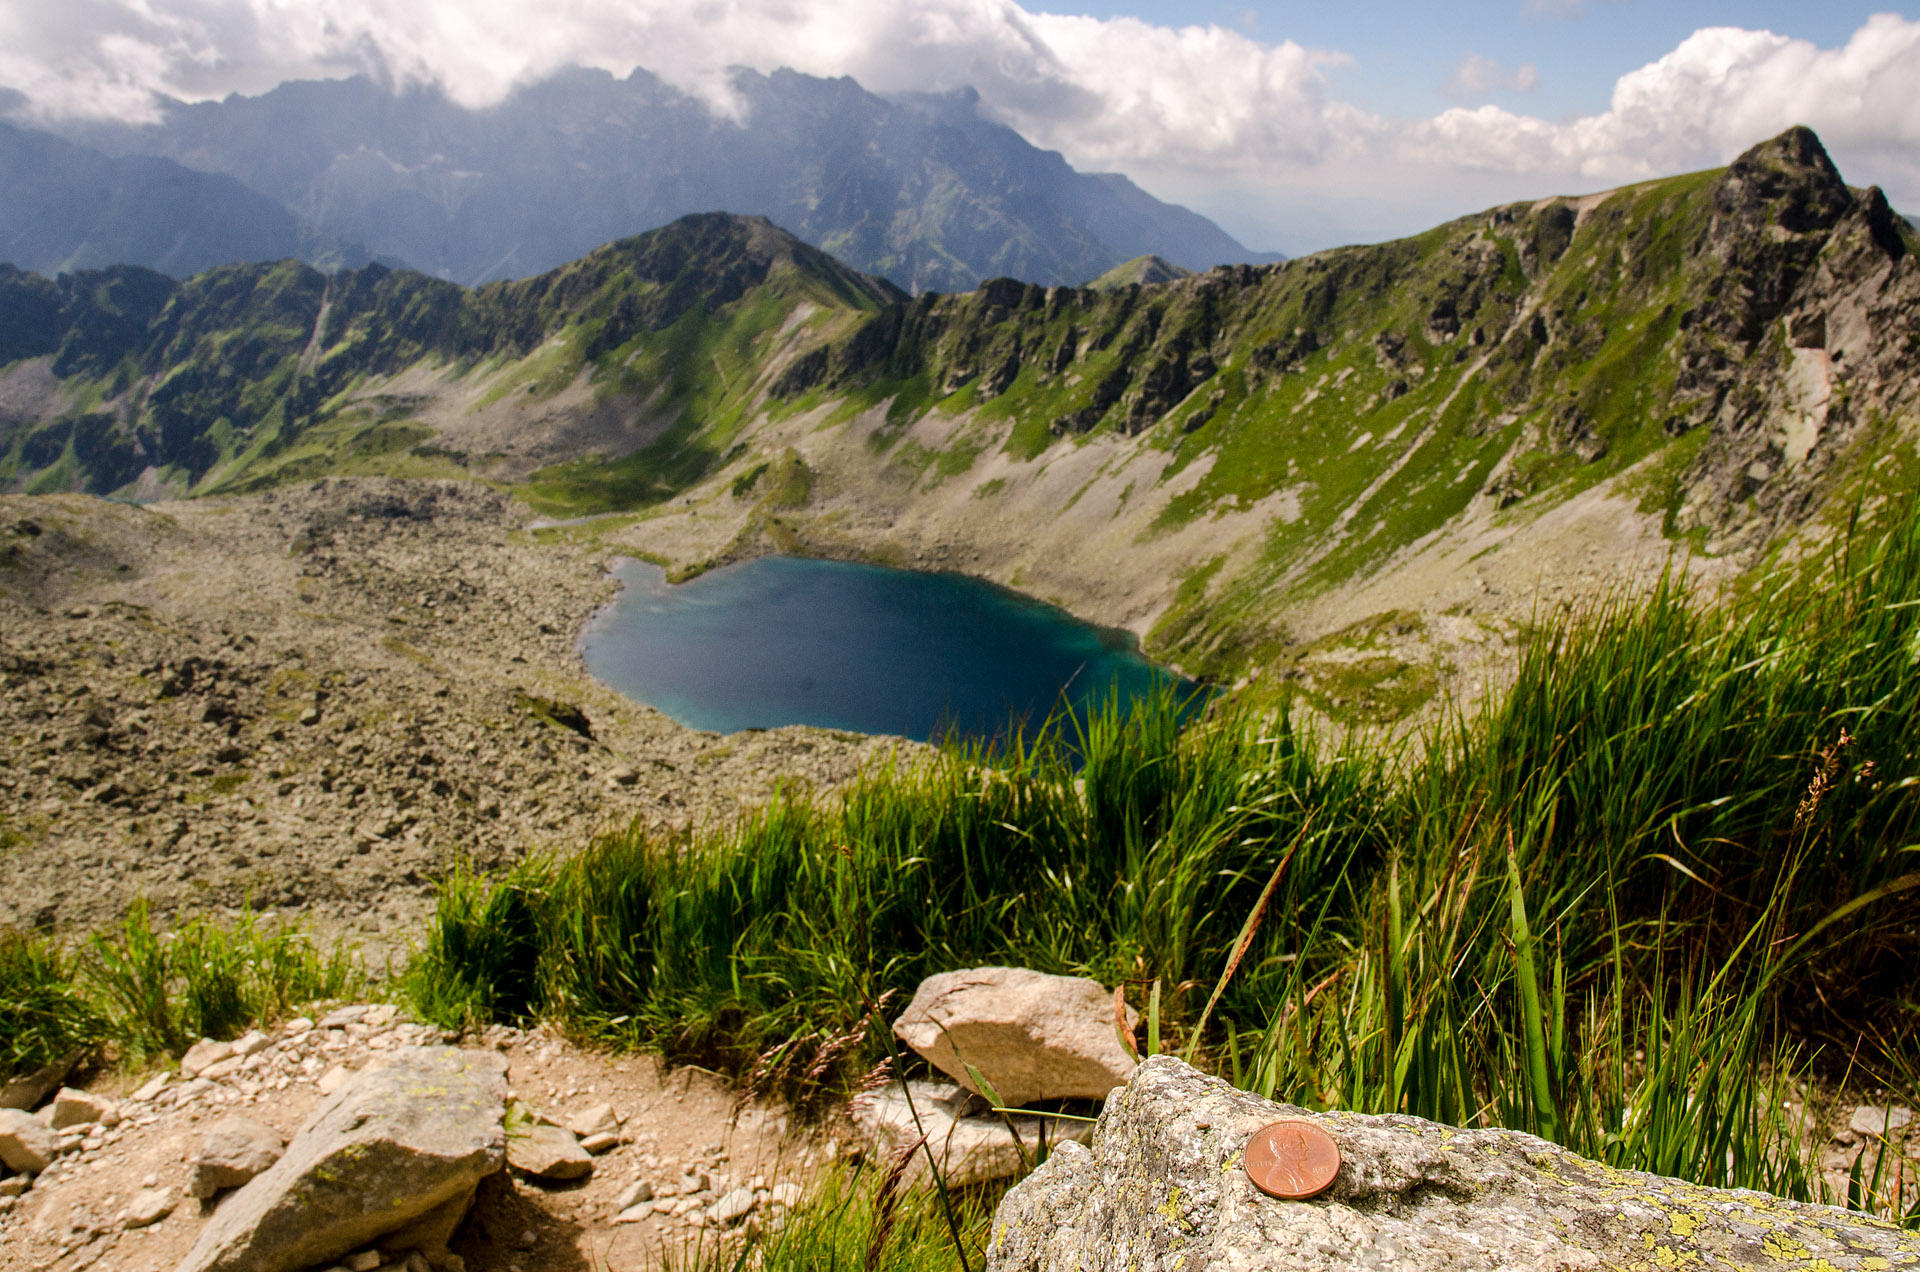 Valley of the Five Polish Lakes, Tatra National Park, Poland